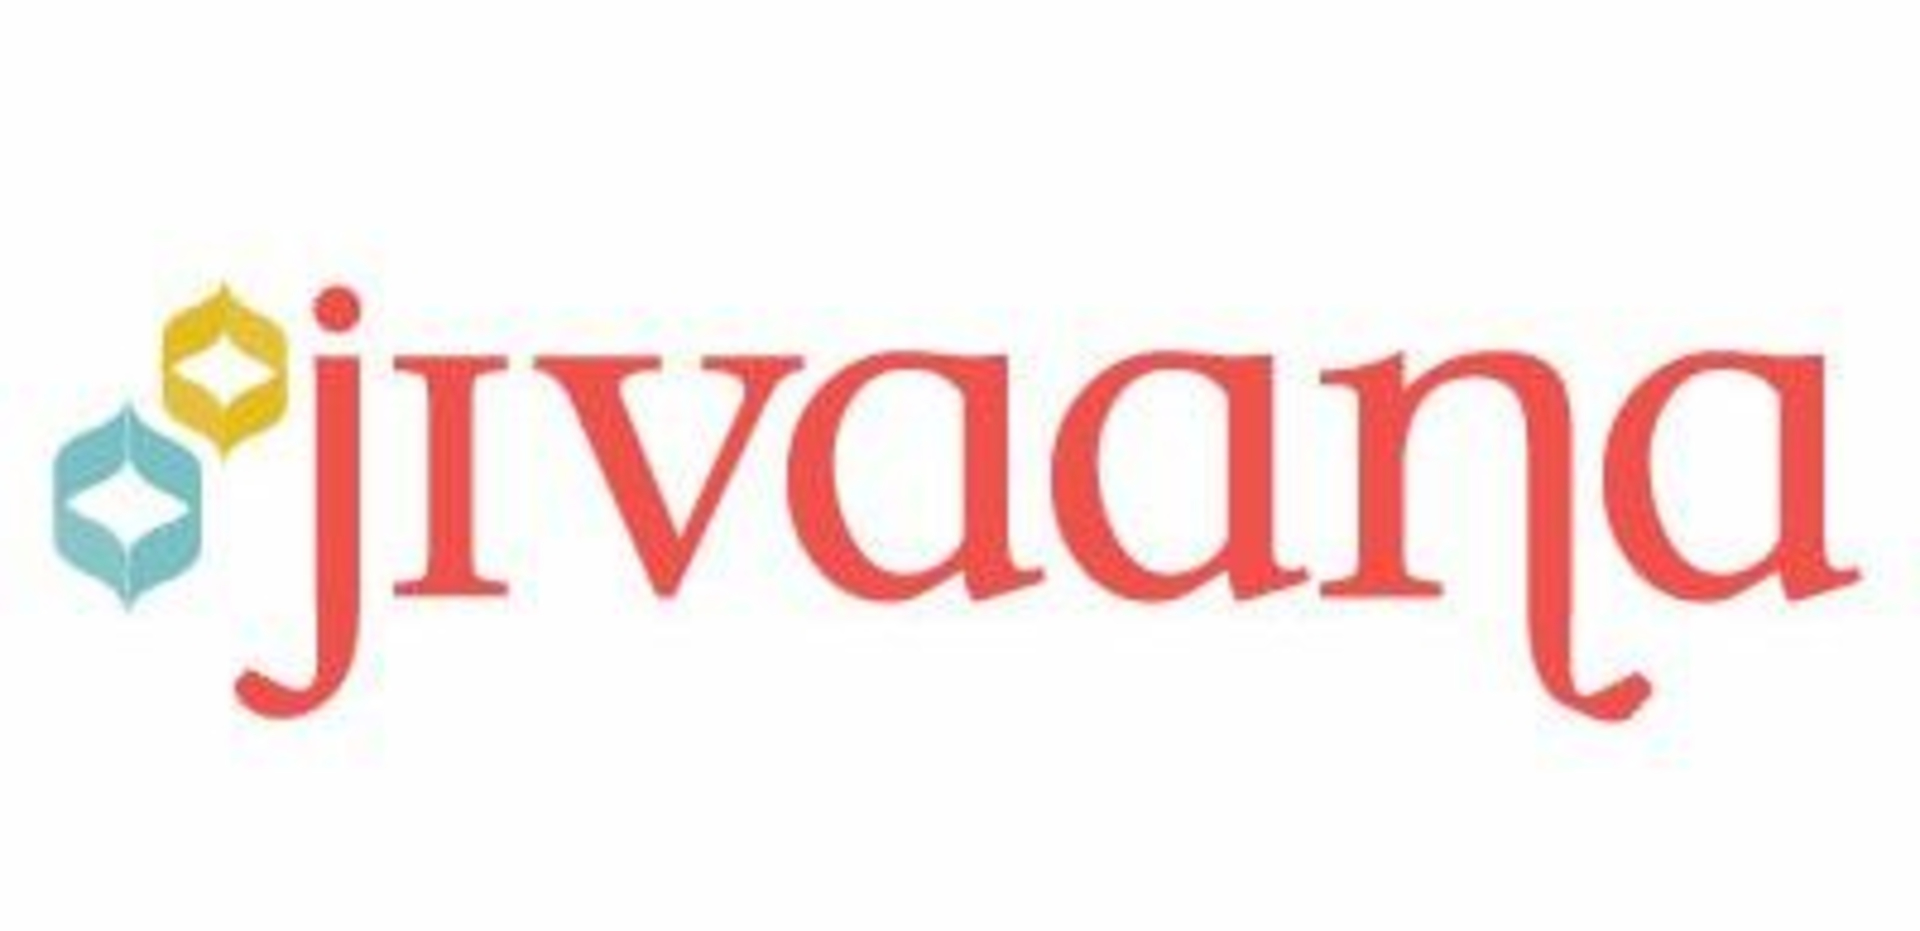 All Things Sassy - jivaana logo